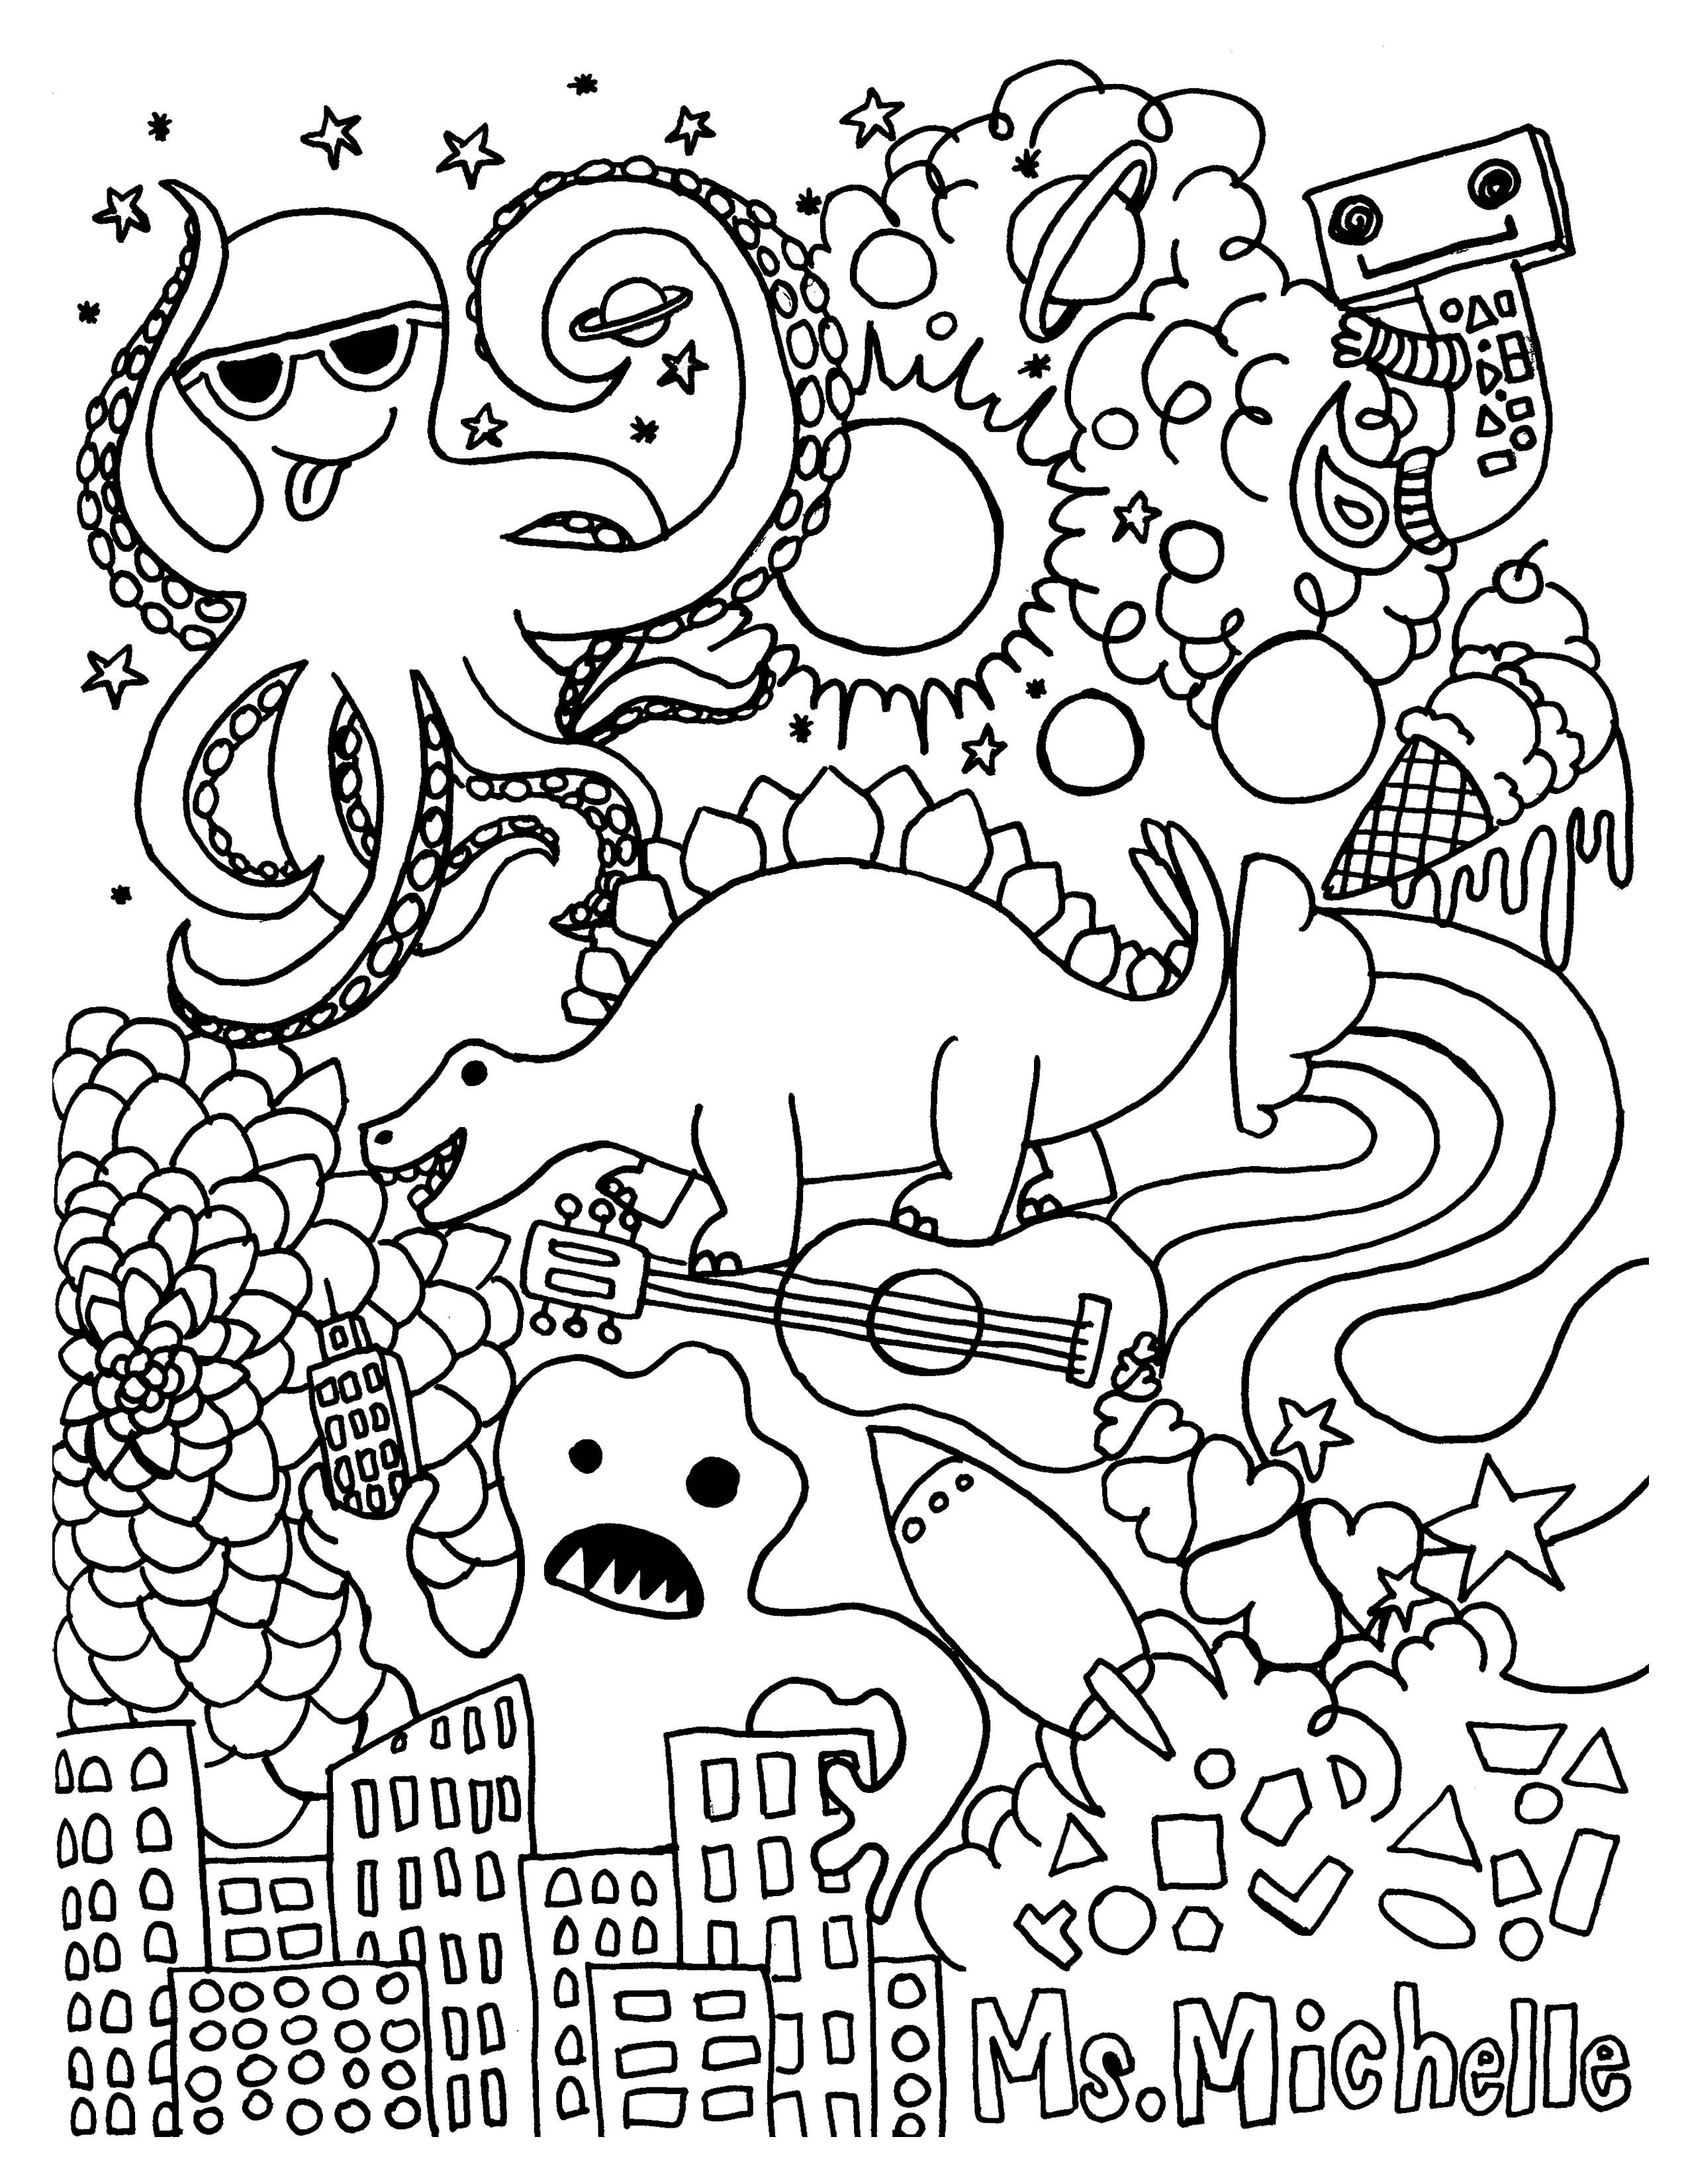 Christmas Coloring Pages For 6th Grade With The Letter K